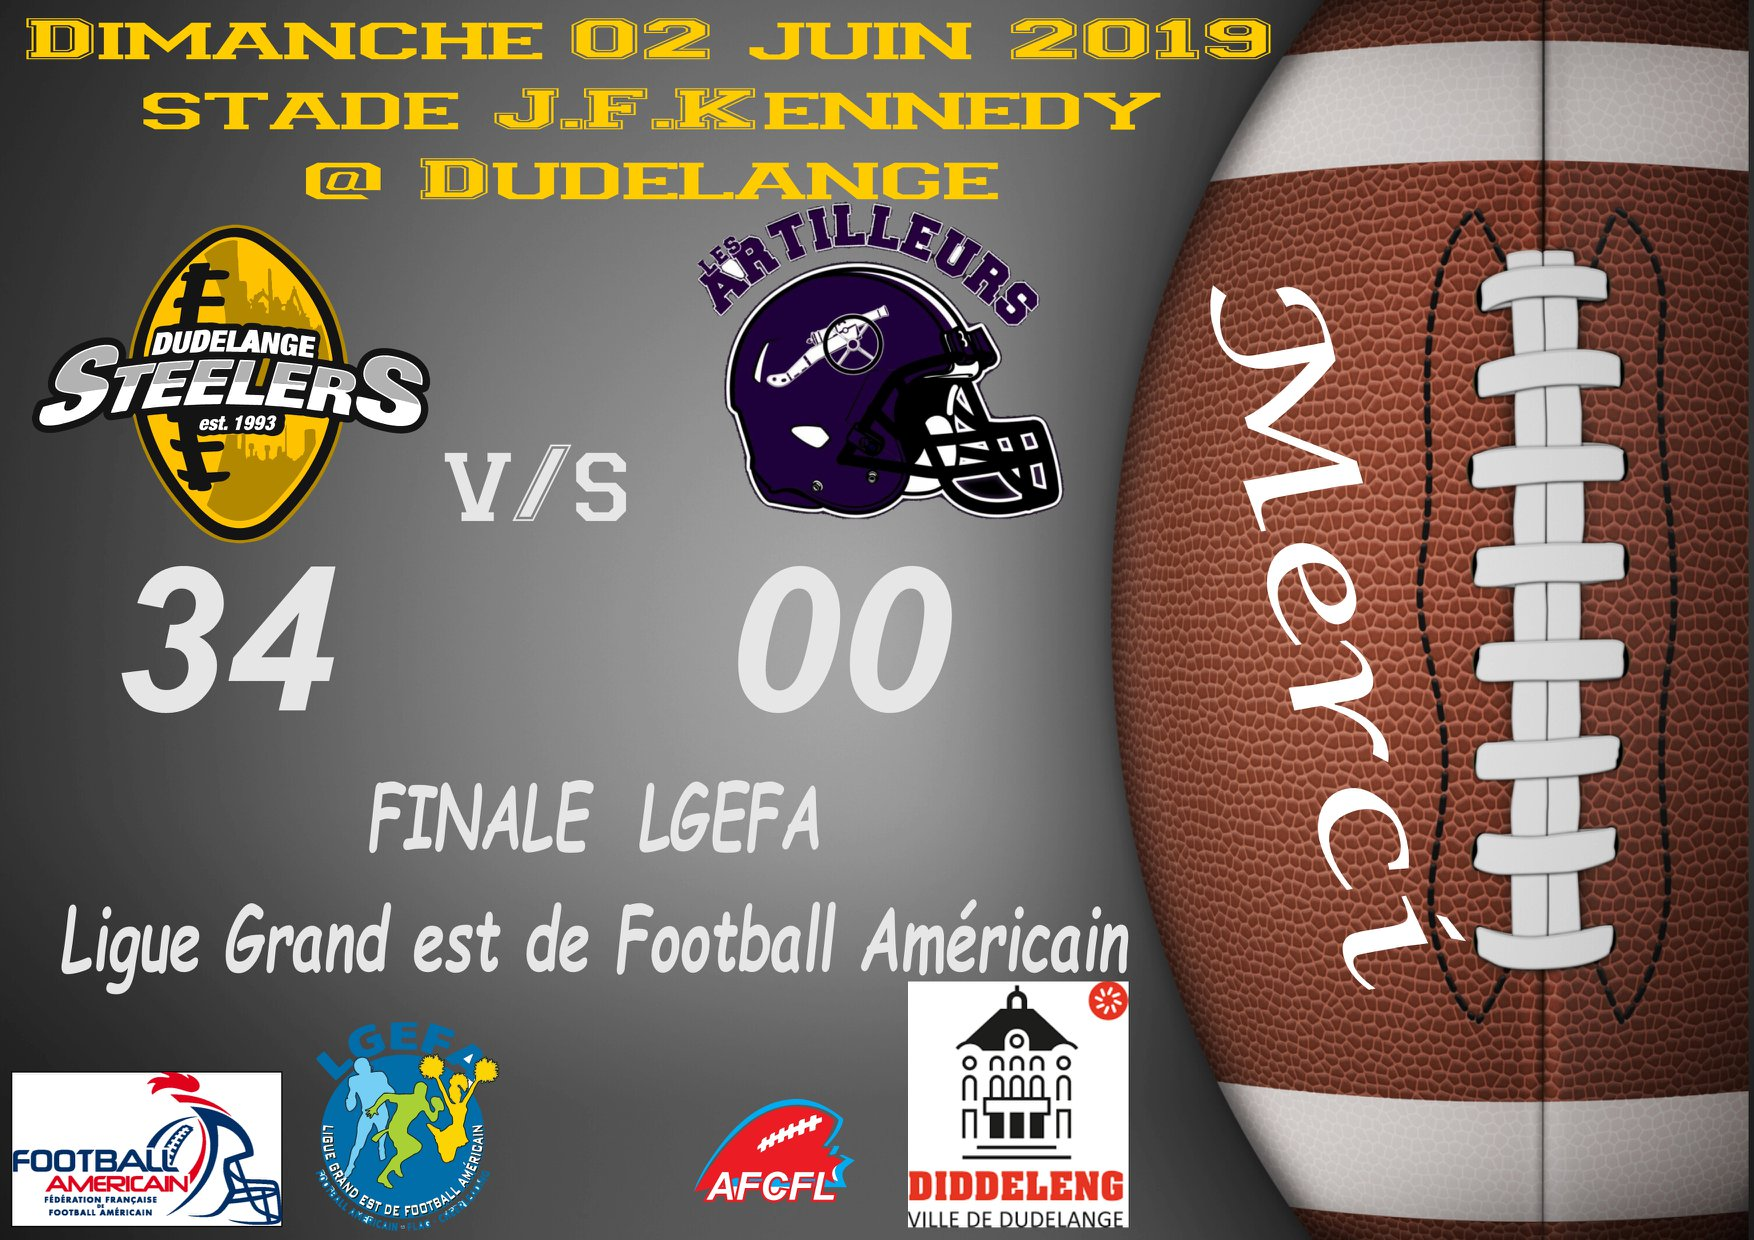 FINALE Game